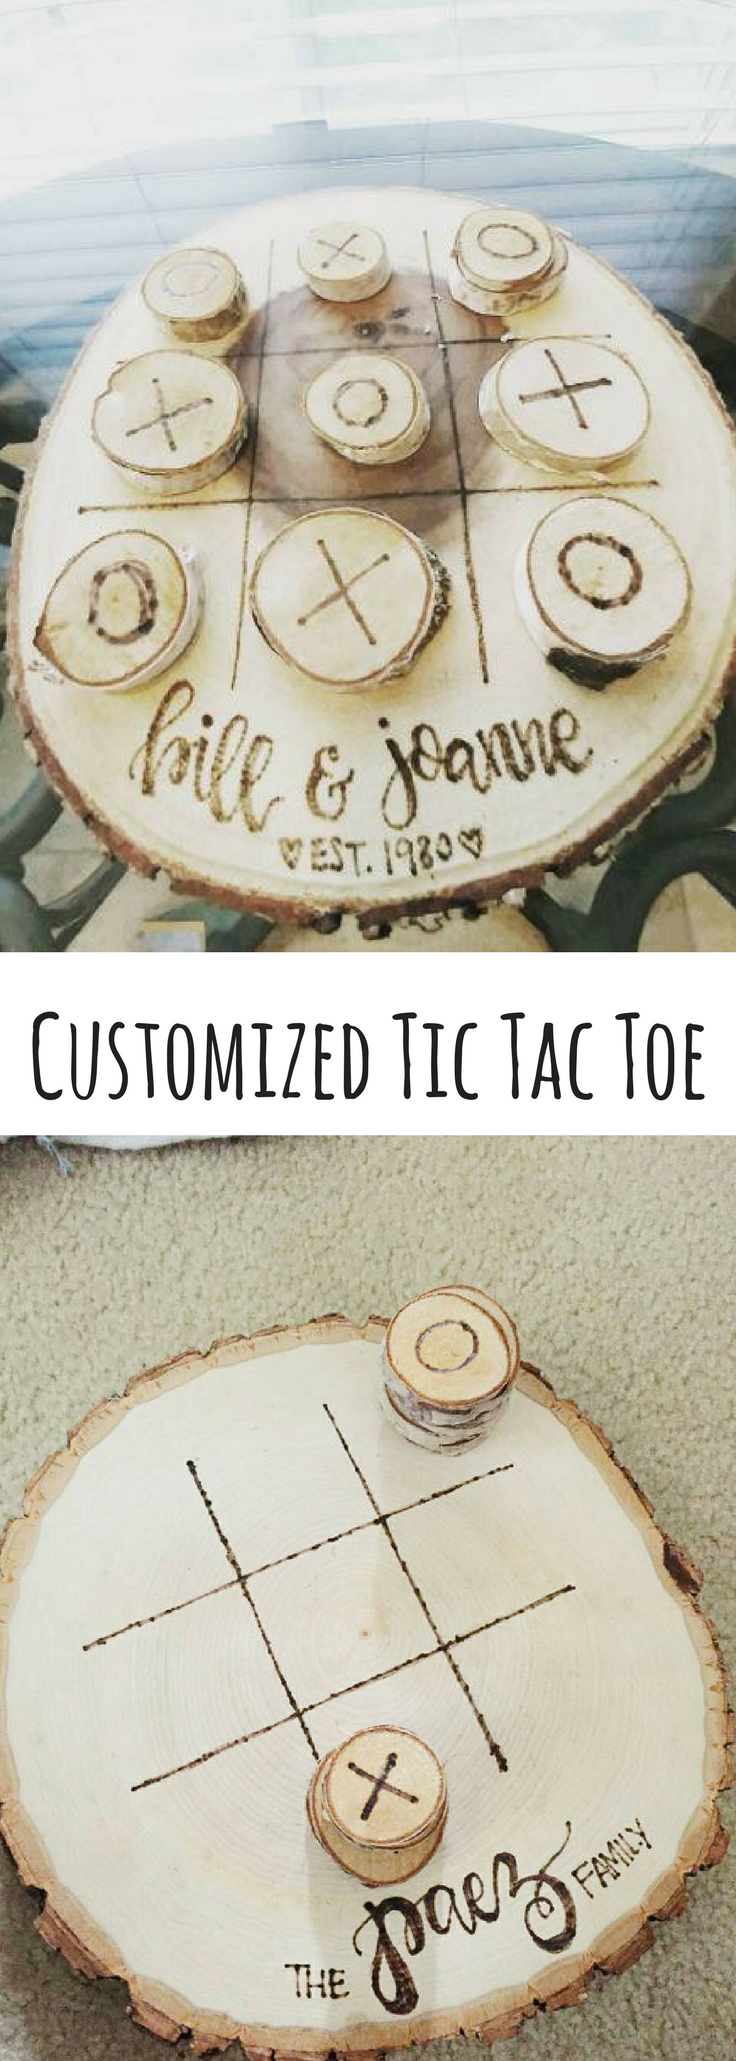 Tic tac toe personalized wood burned art on large thick wood round